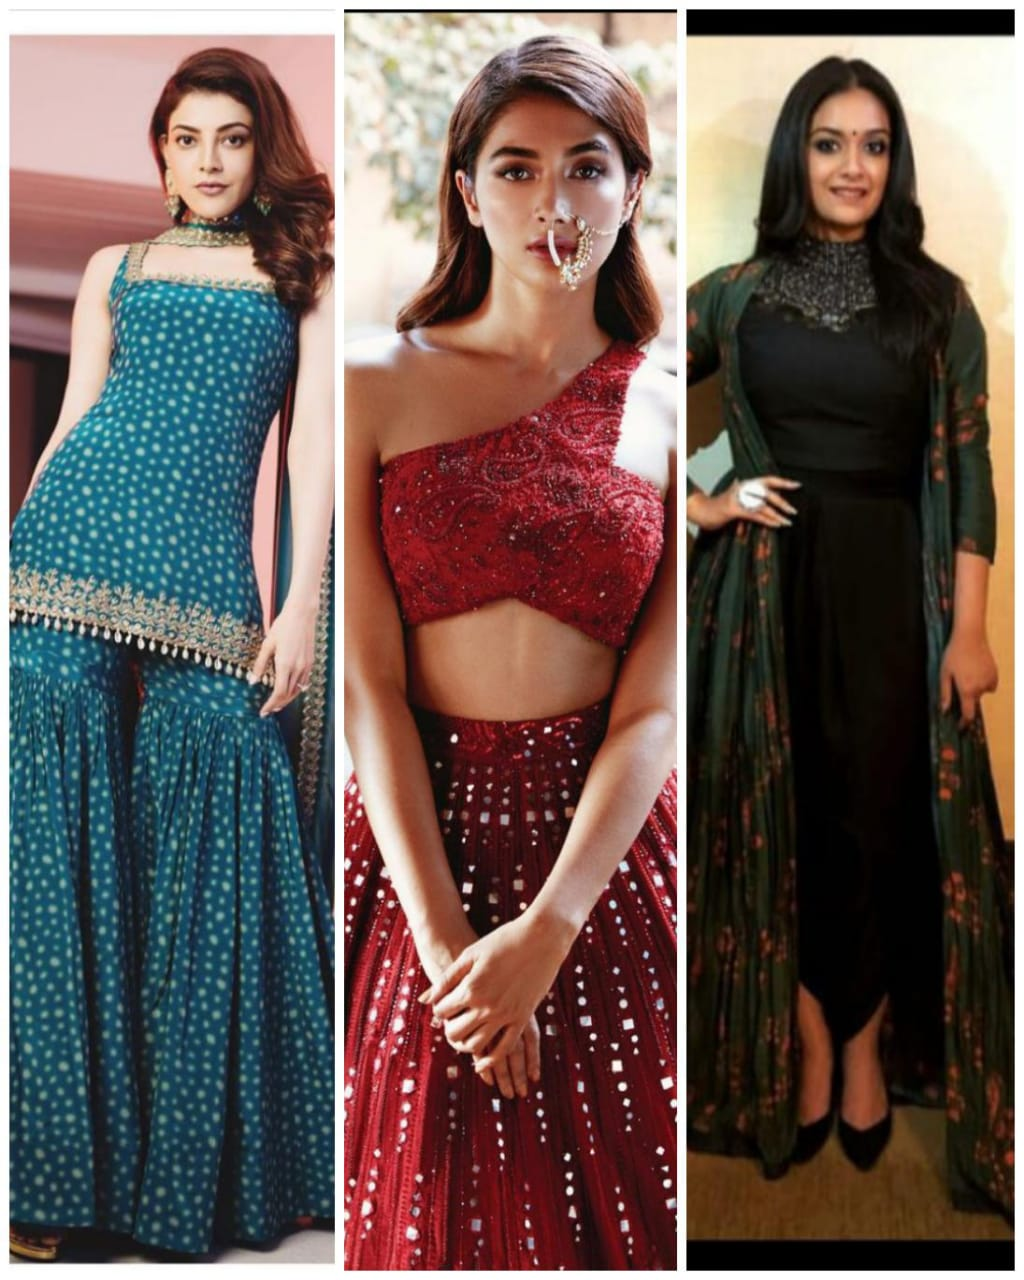 Kajal Aggarwal, Pooja Hegde to Anushka Shetty: Queen of Indo-western mix-matching